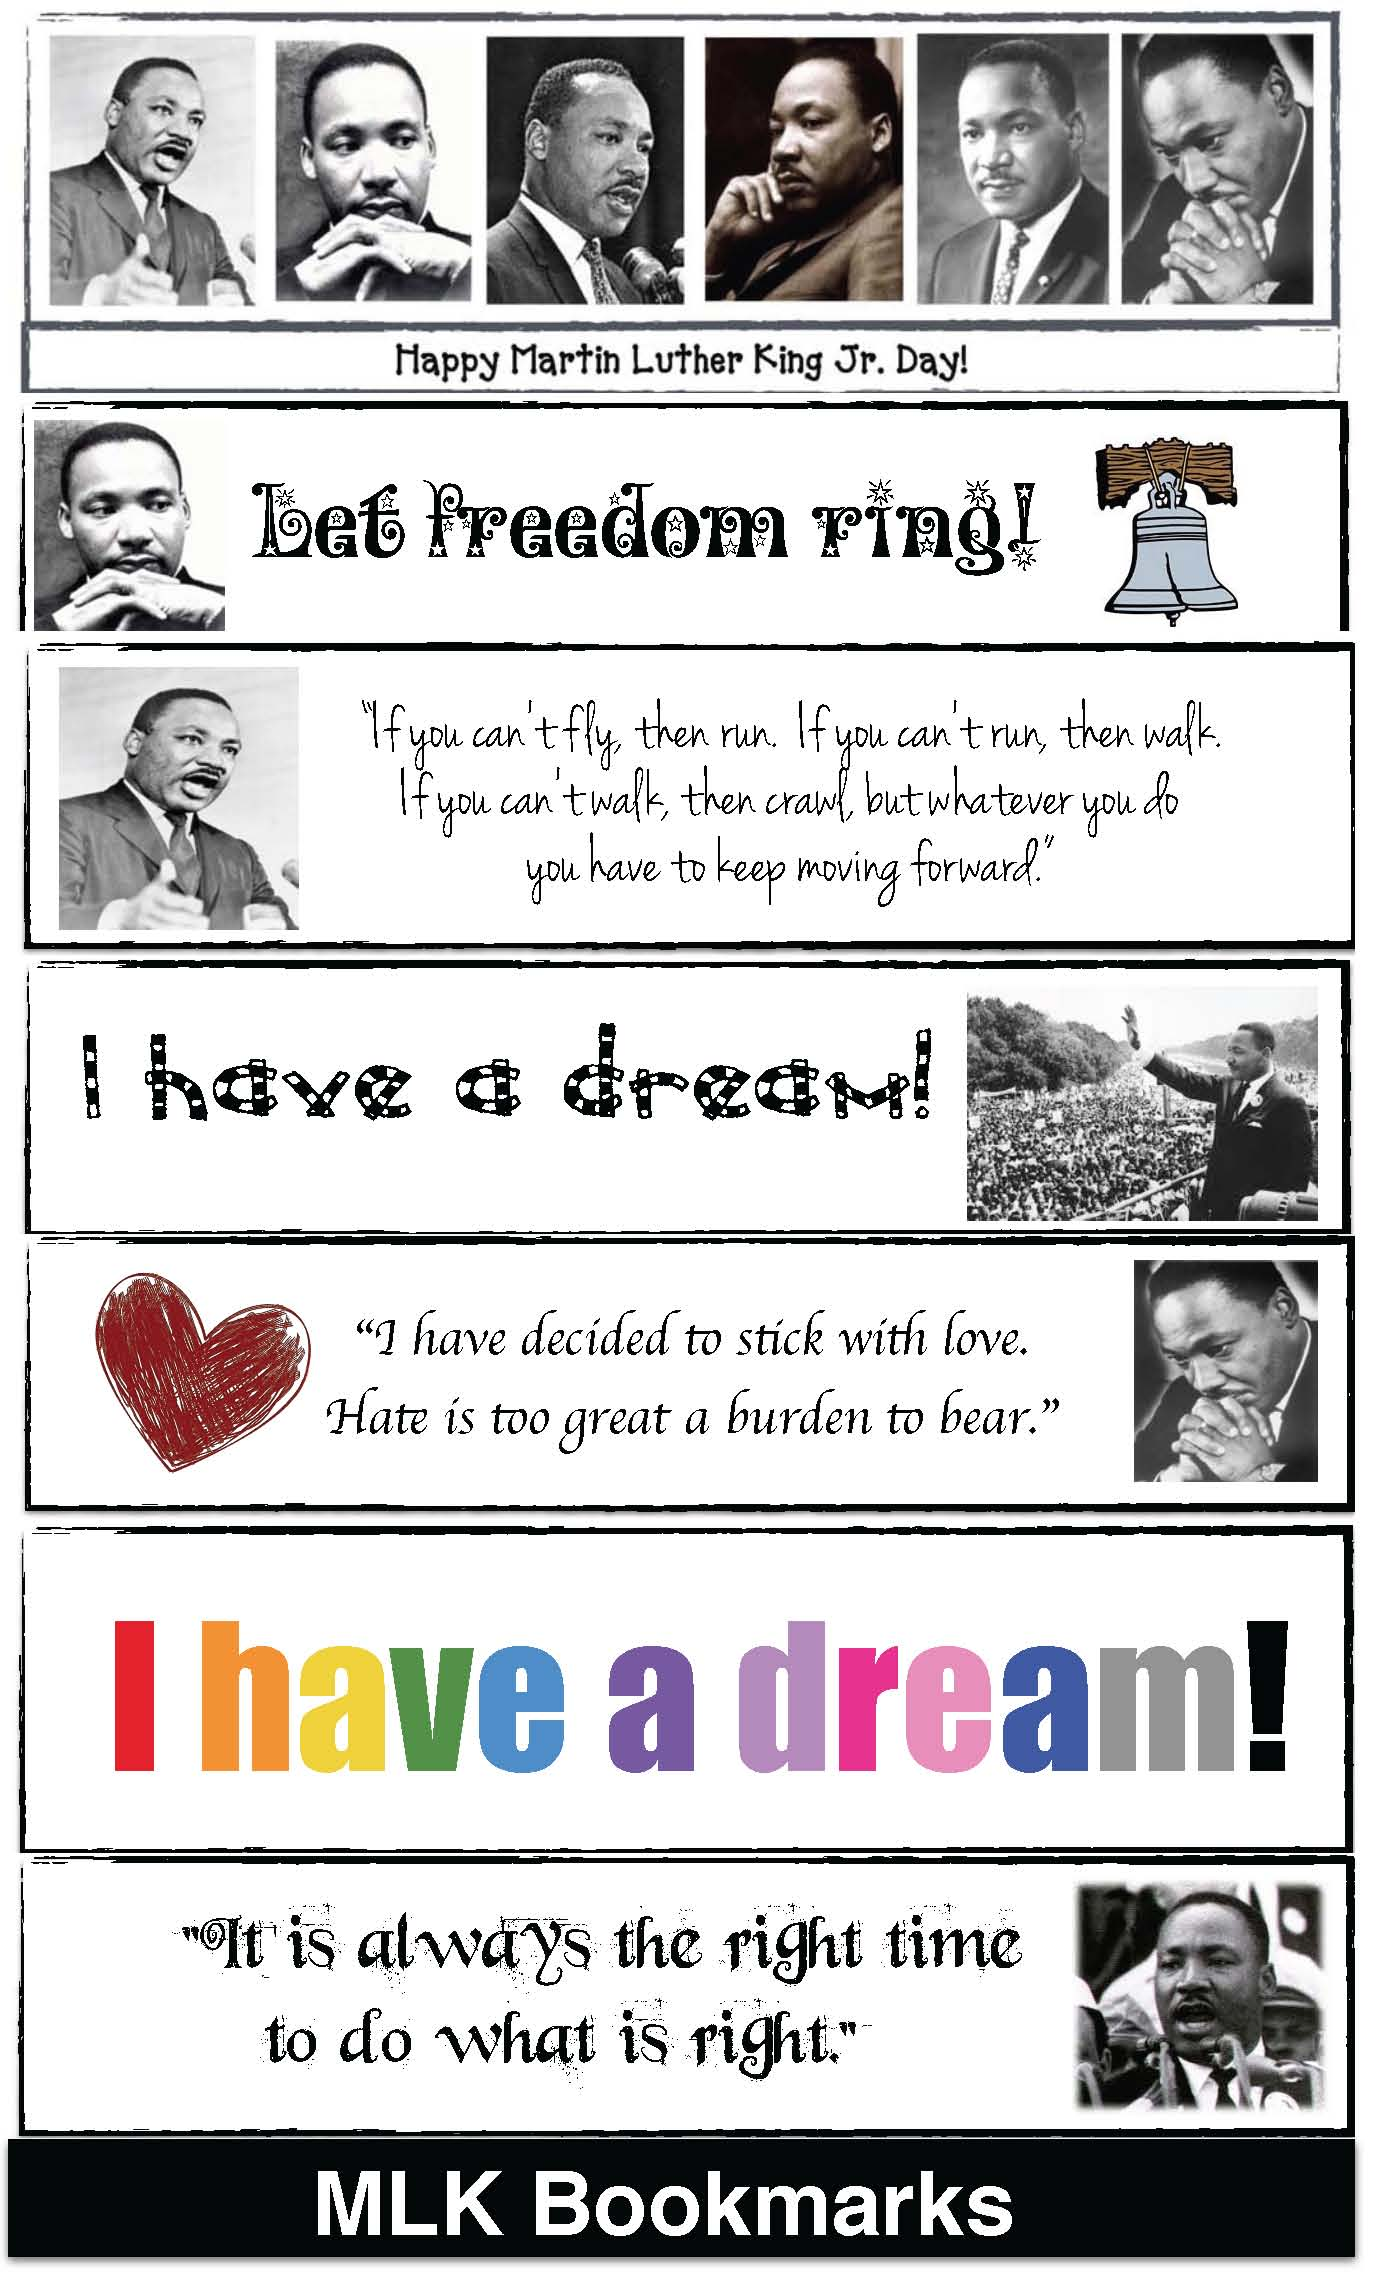 mlk activities, martin luther king activities, martin luther king facts, martin luther king crafts, martin luther king bulletin board ideas, free martin luther king lessons, free martin luther king bookmarks, martin luther king writing prompts, jaunary bulletin boards